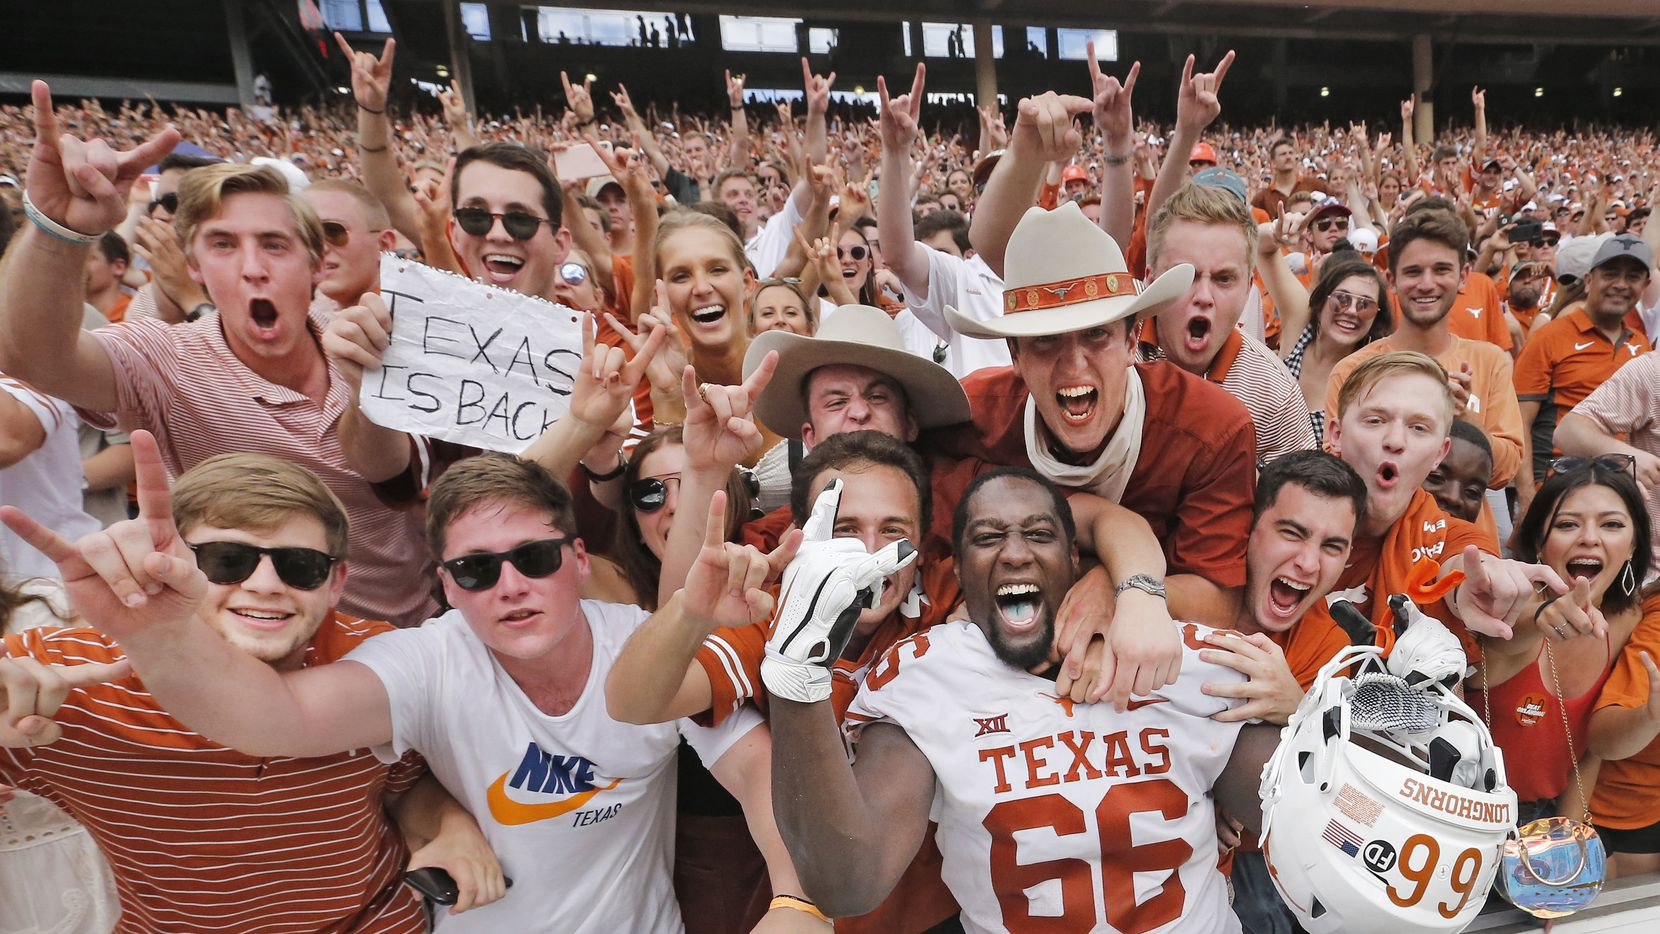 Texas Longhorns offensive lineman Calvin Anderson (66) celebrates with fans after the Longhorns 48-45 win during the University of Texas Longhorns vs. the Oklahoma Sooners NCAA football game at the Cotton Bowl in Dallas on Oct. 6, 2018. (Louis DeLuca/The Dallas Morning News)